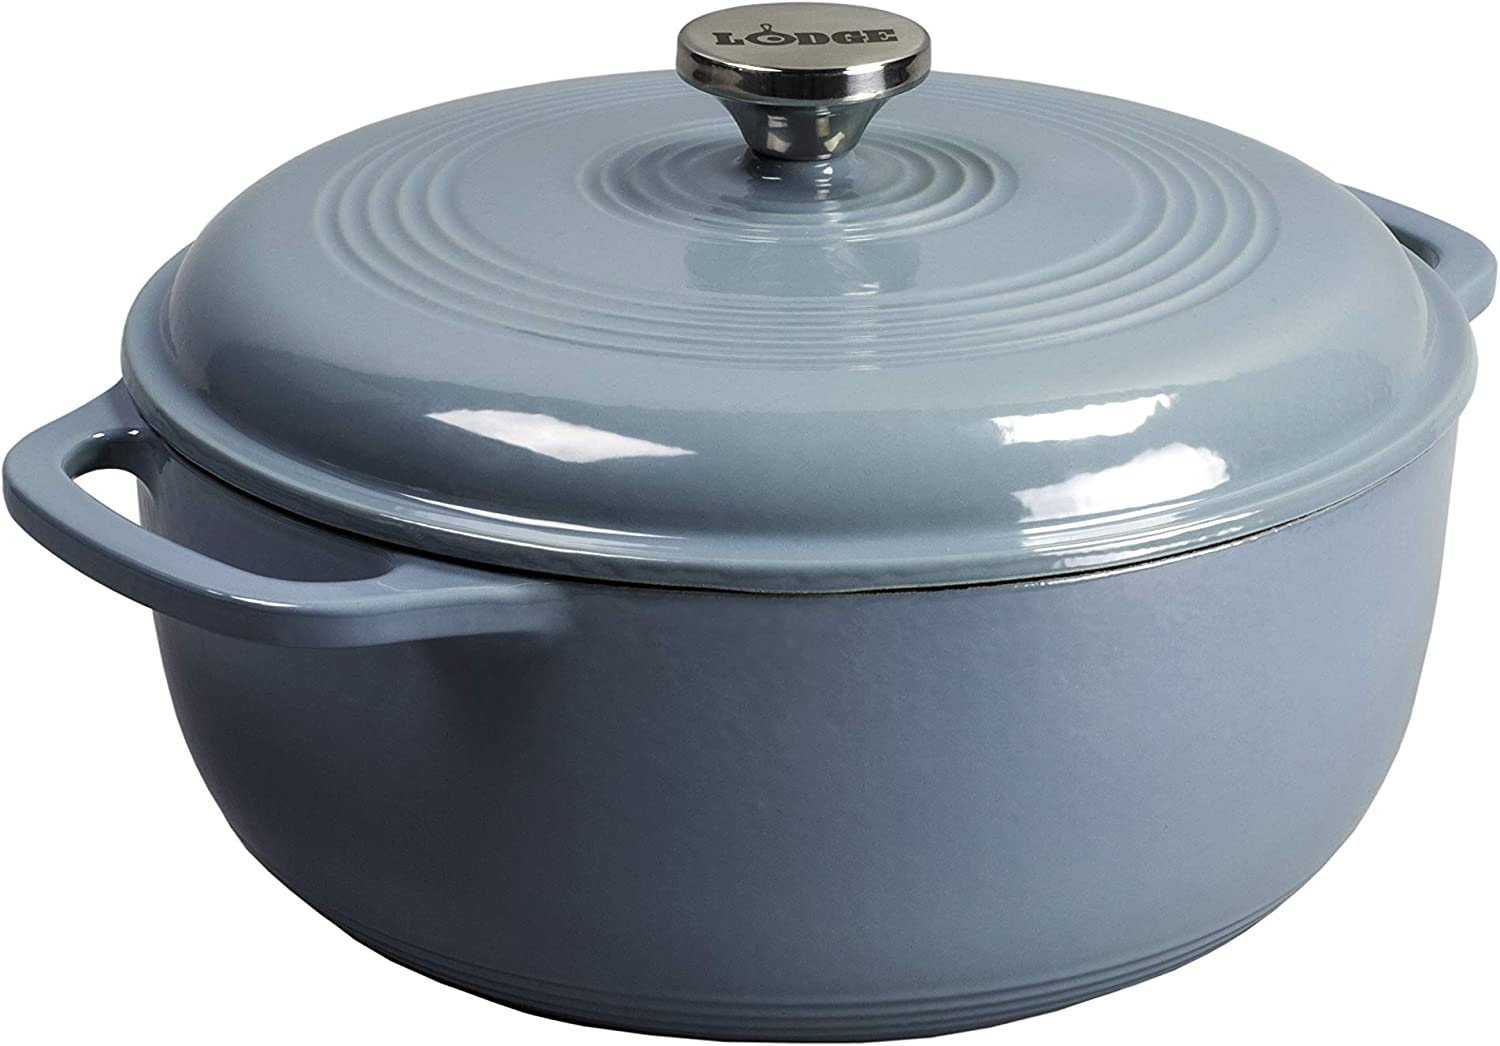 Lodge EC6D34 Enameled Dutch Oven, 6 Qt, Storm Blue